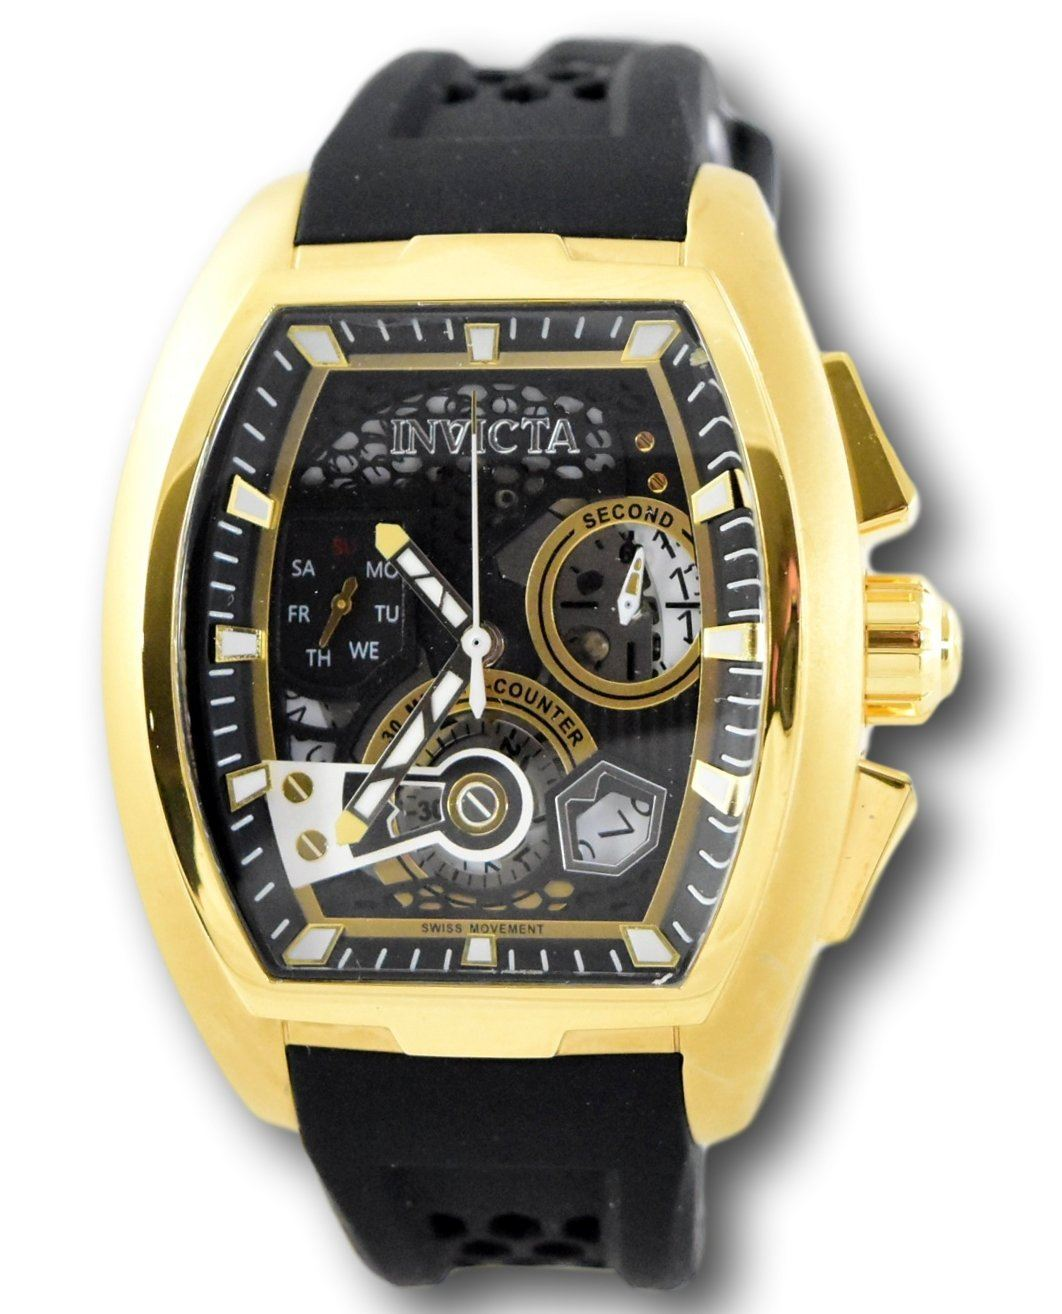 658a817b7 Details about Invicta S1 Rally Diablo Men's Gold Swiss Chronograph Watch  26398 42mm